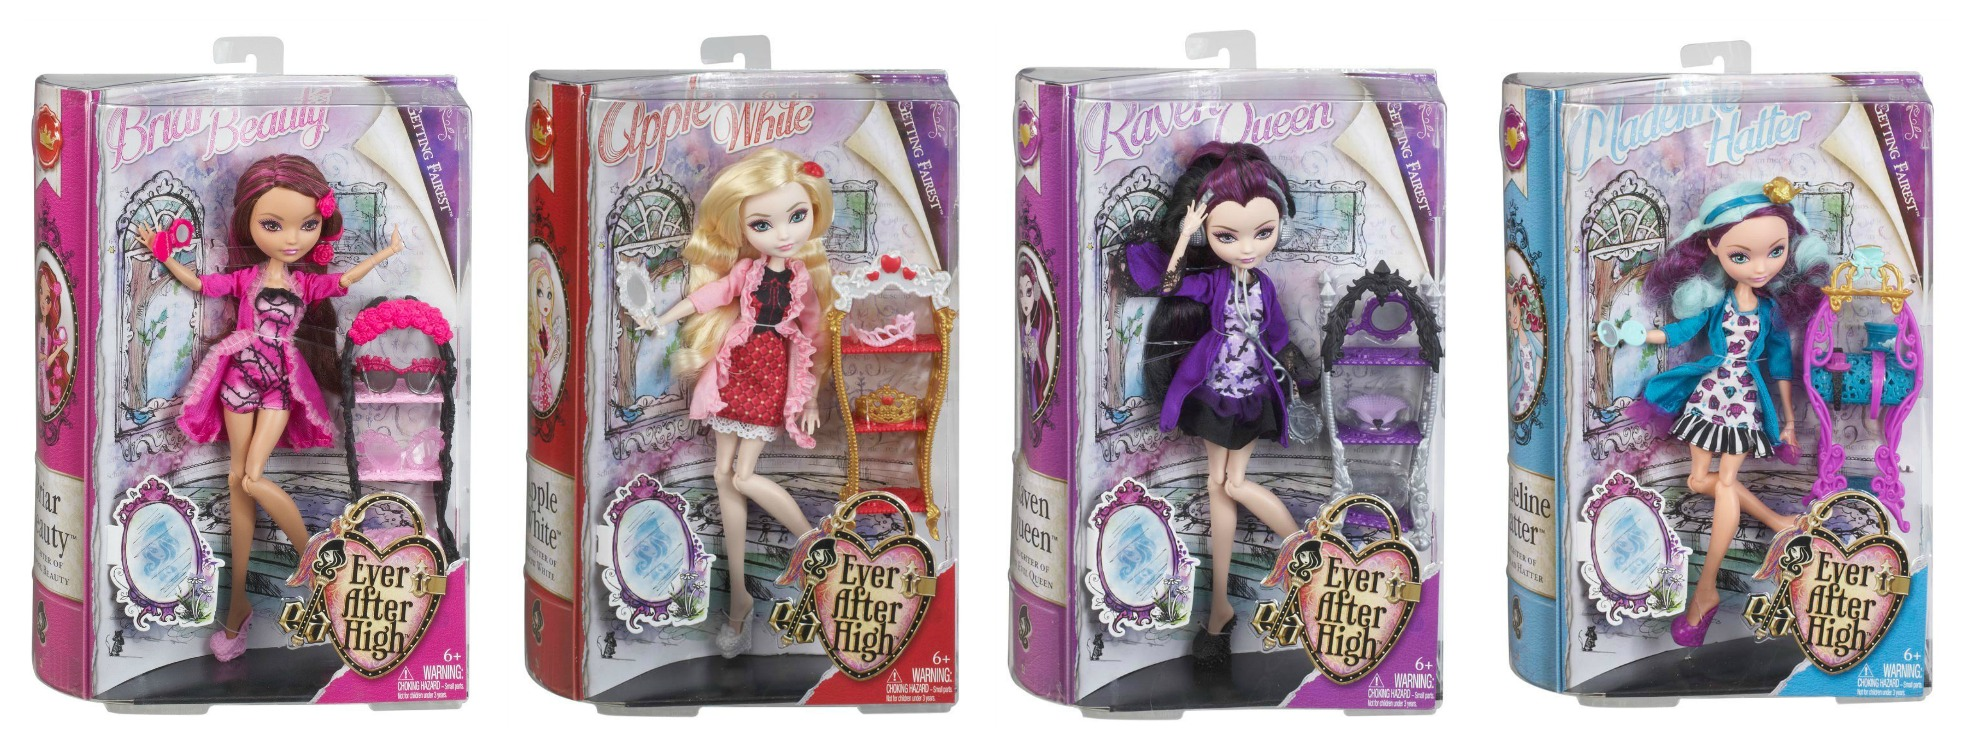 Select Ever After High Dolls Amp Accessories Just 11 Reg